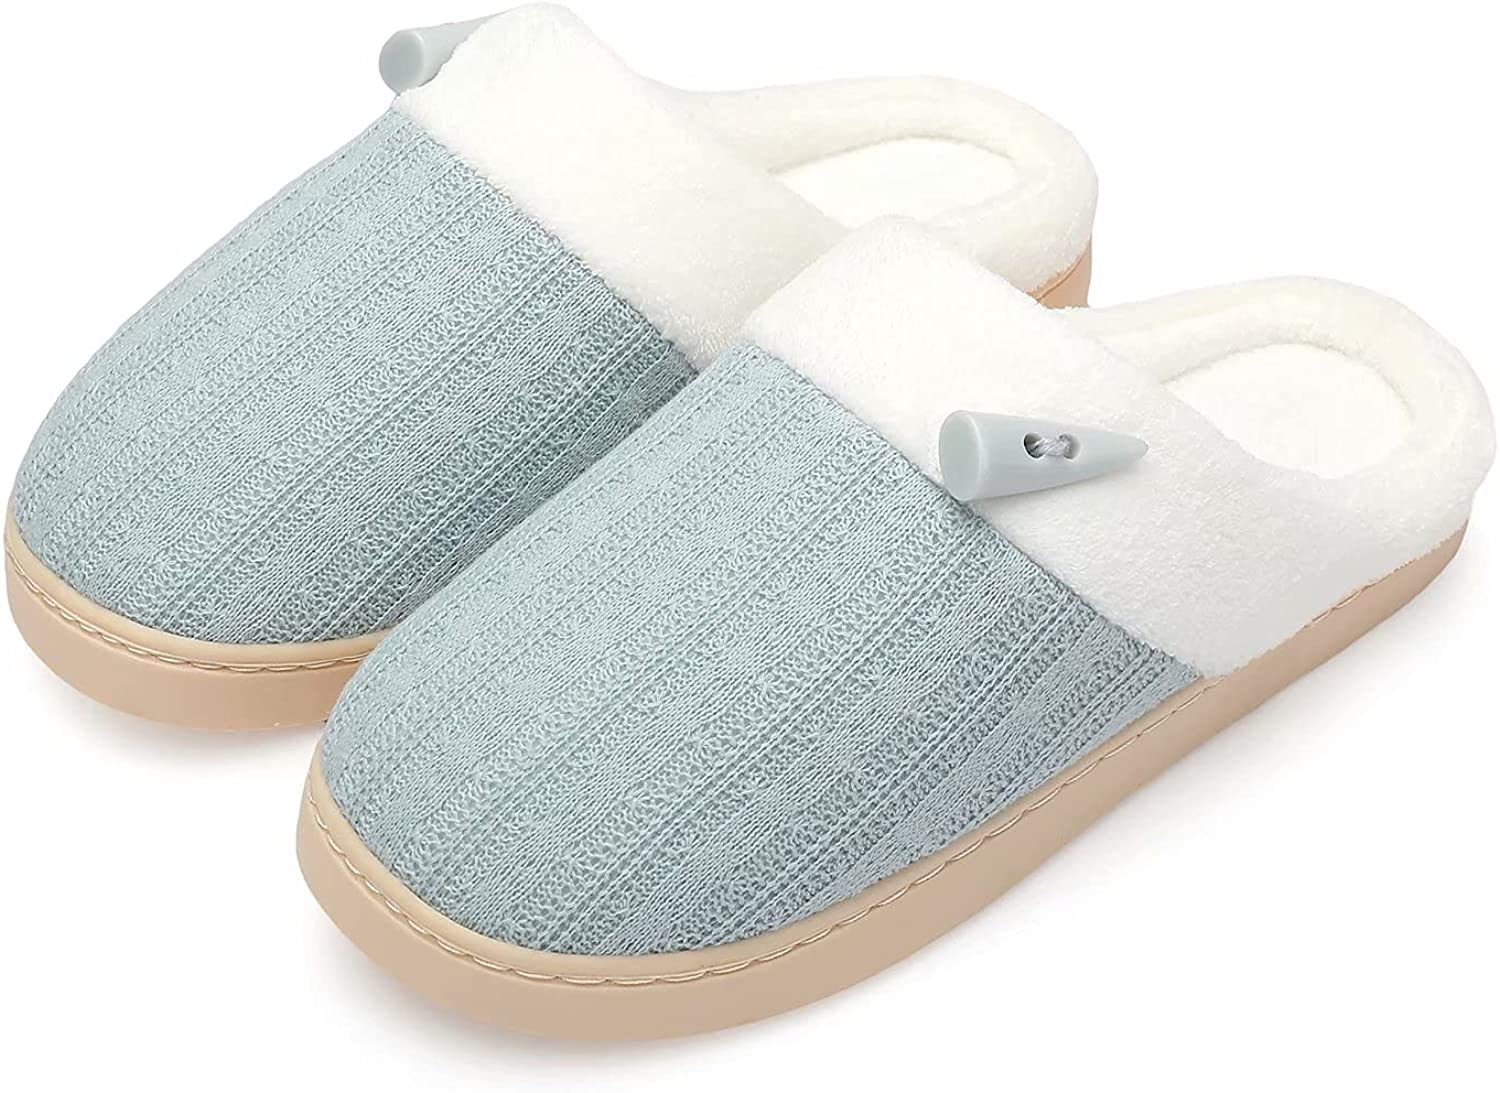 NineCiFun Women's Summer Slippers Scuff Comfy House Shoes Slip on Memory Foam Bedroom Slippers Indoor Outdoor Home Shoes with Soft Terry Lining